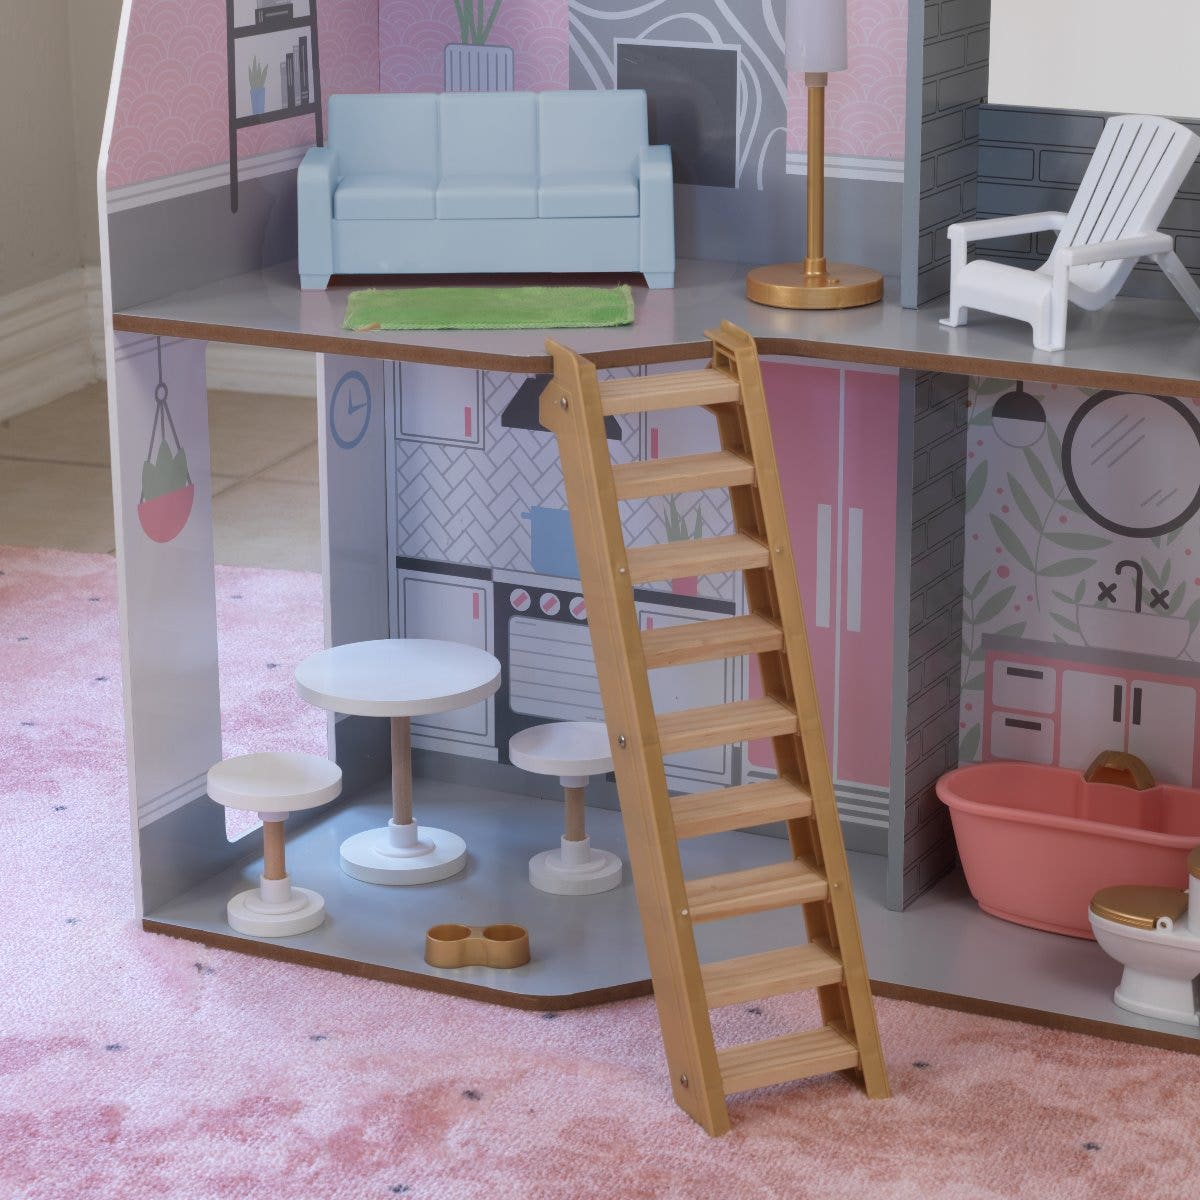 Movable staircase